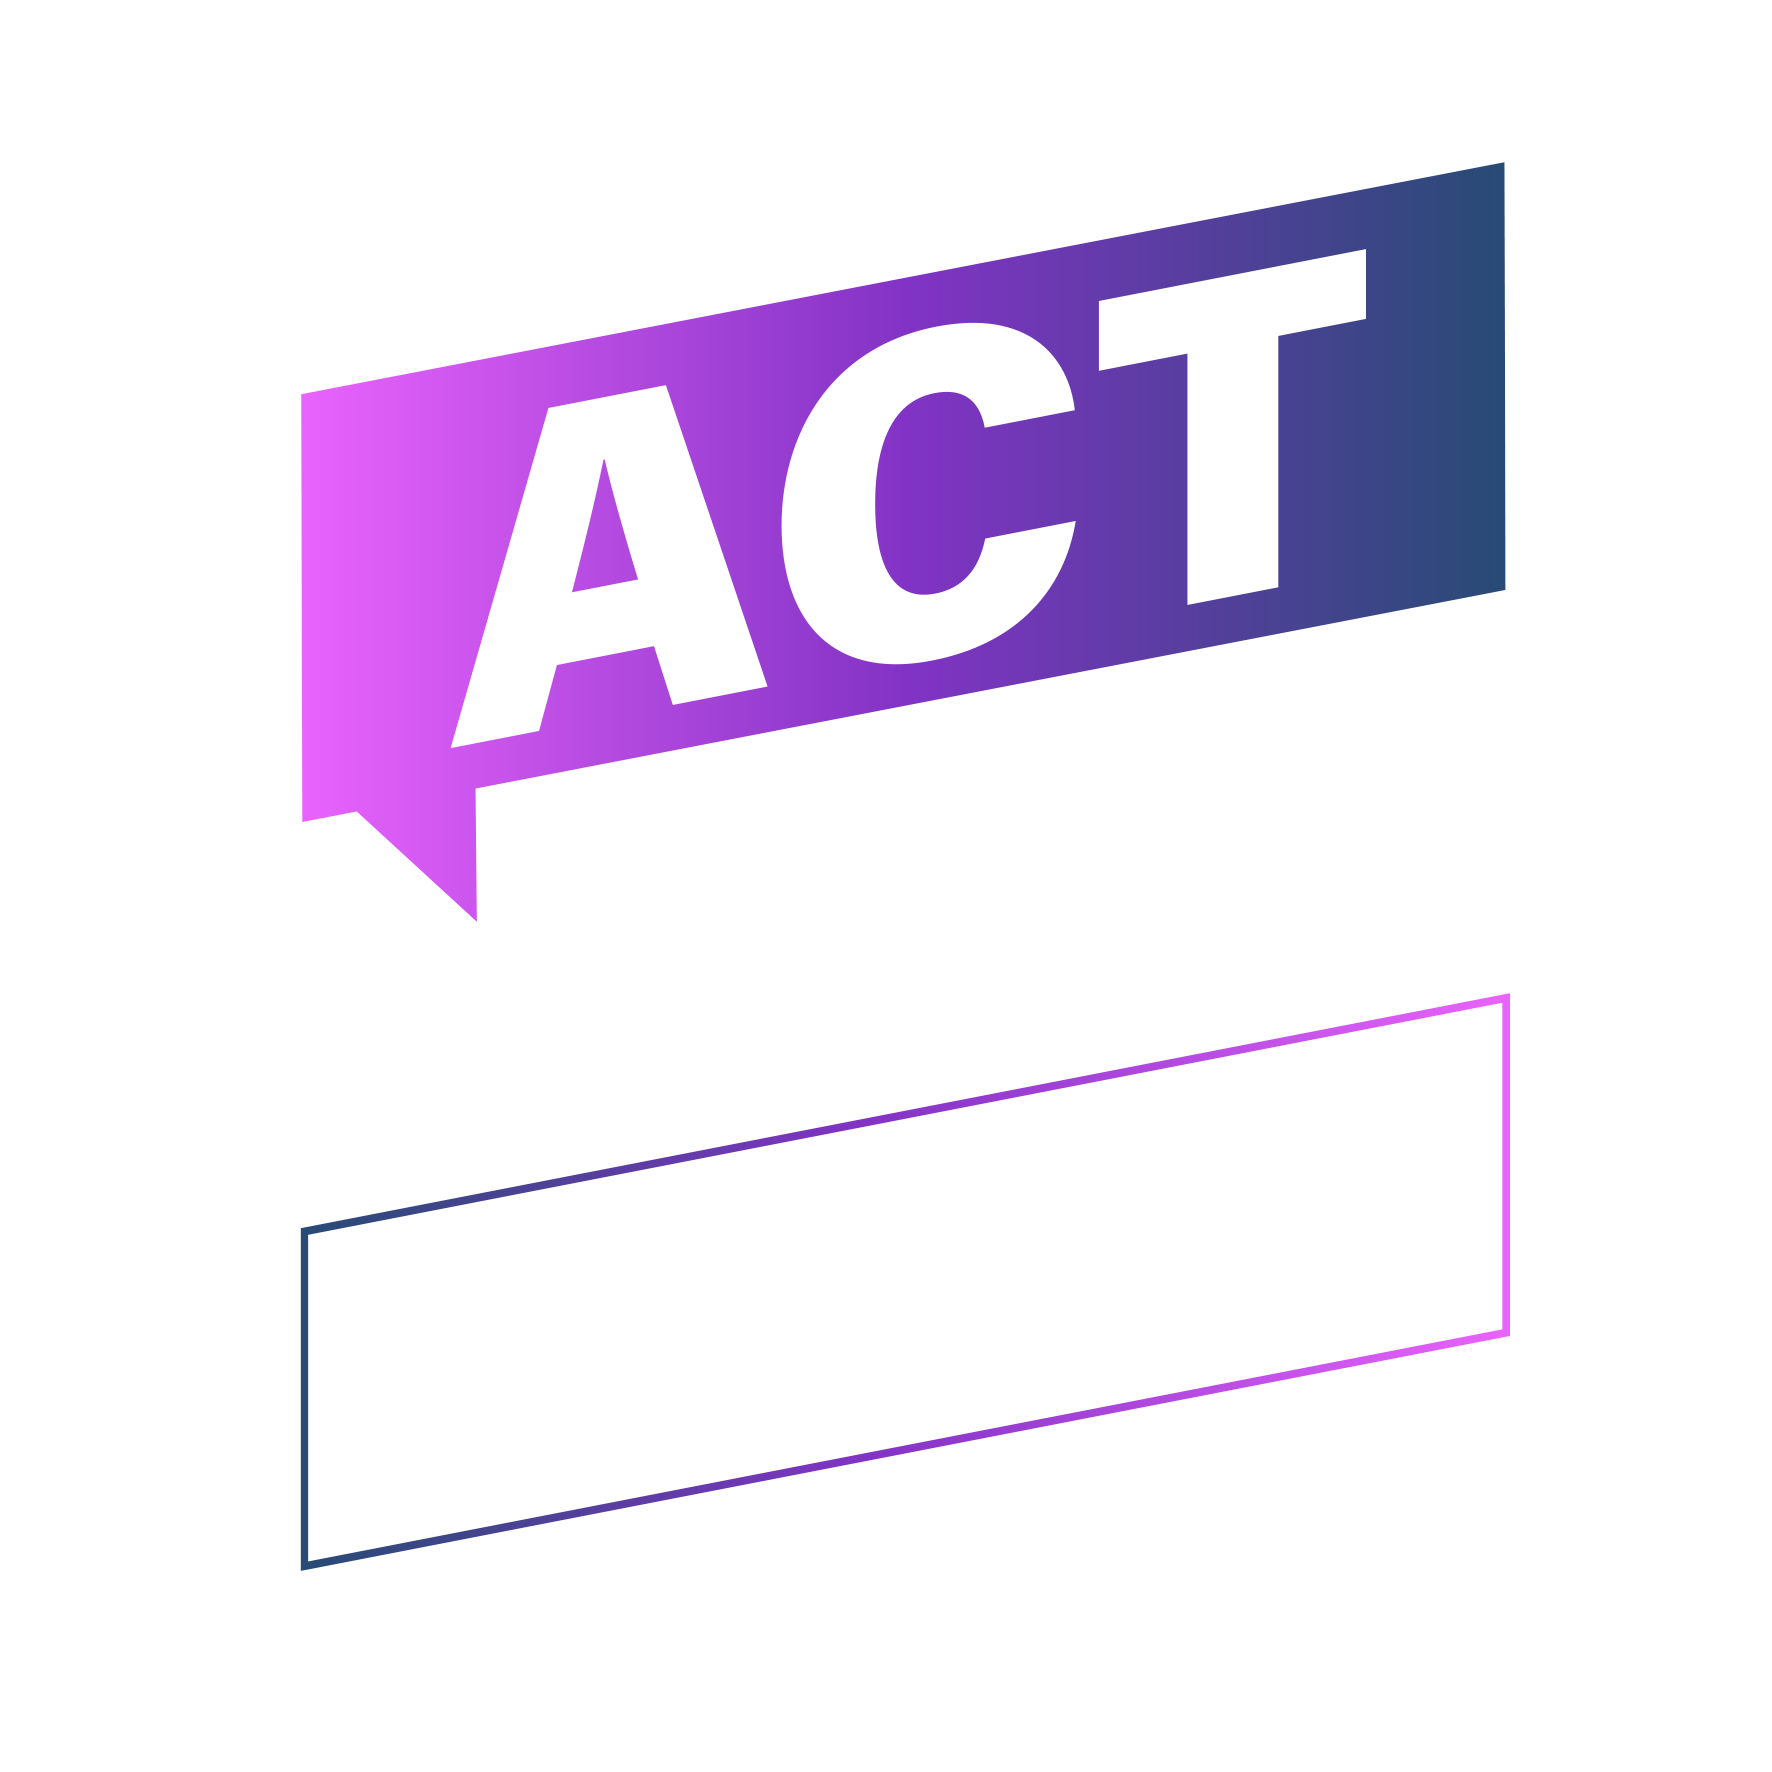 Act on NCDS - Accountability logo colour negative